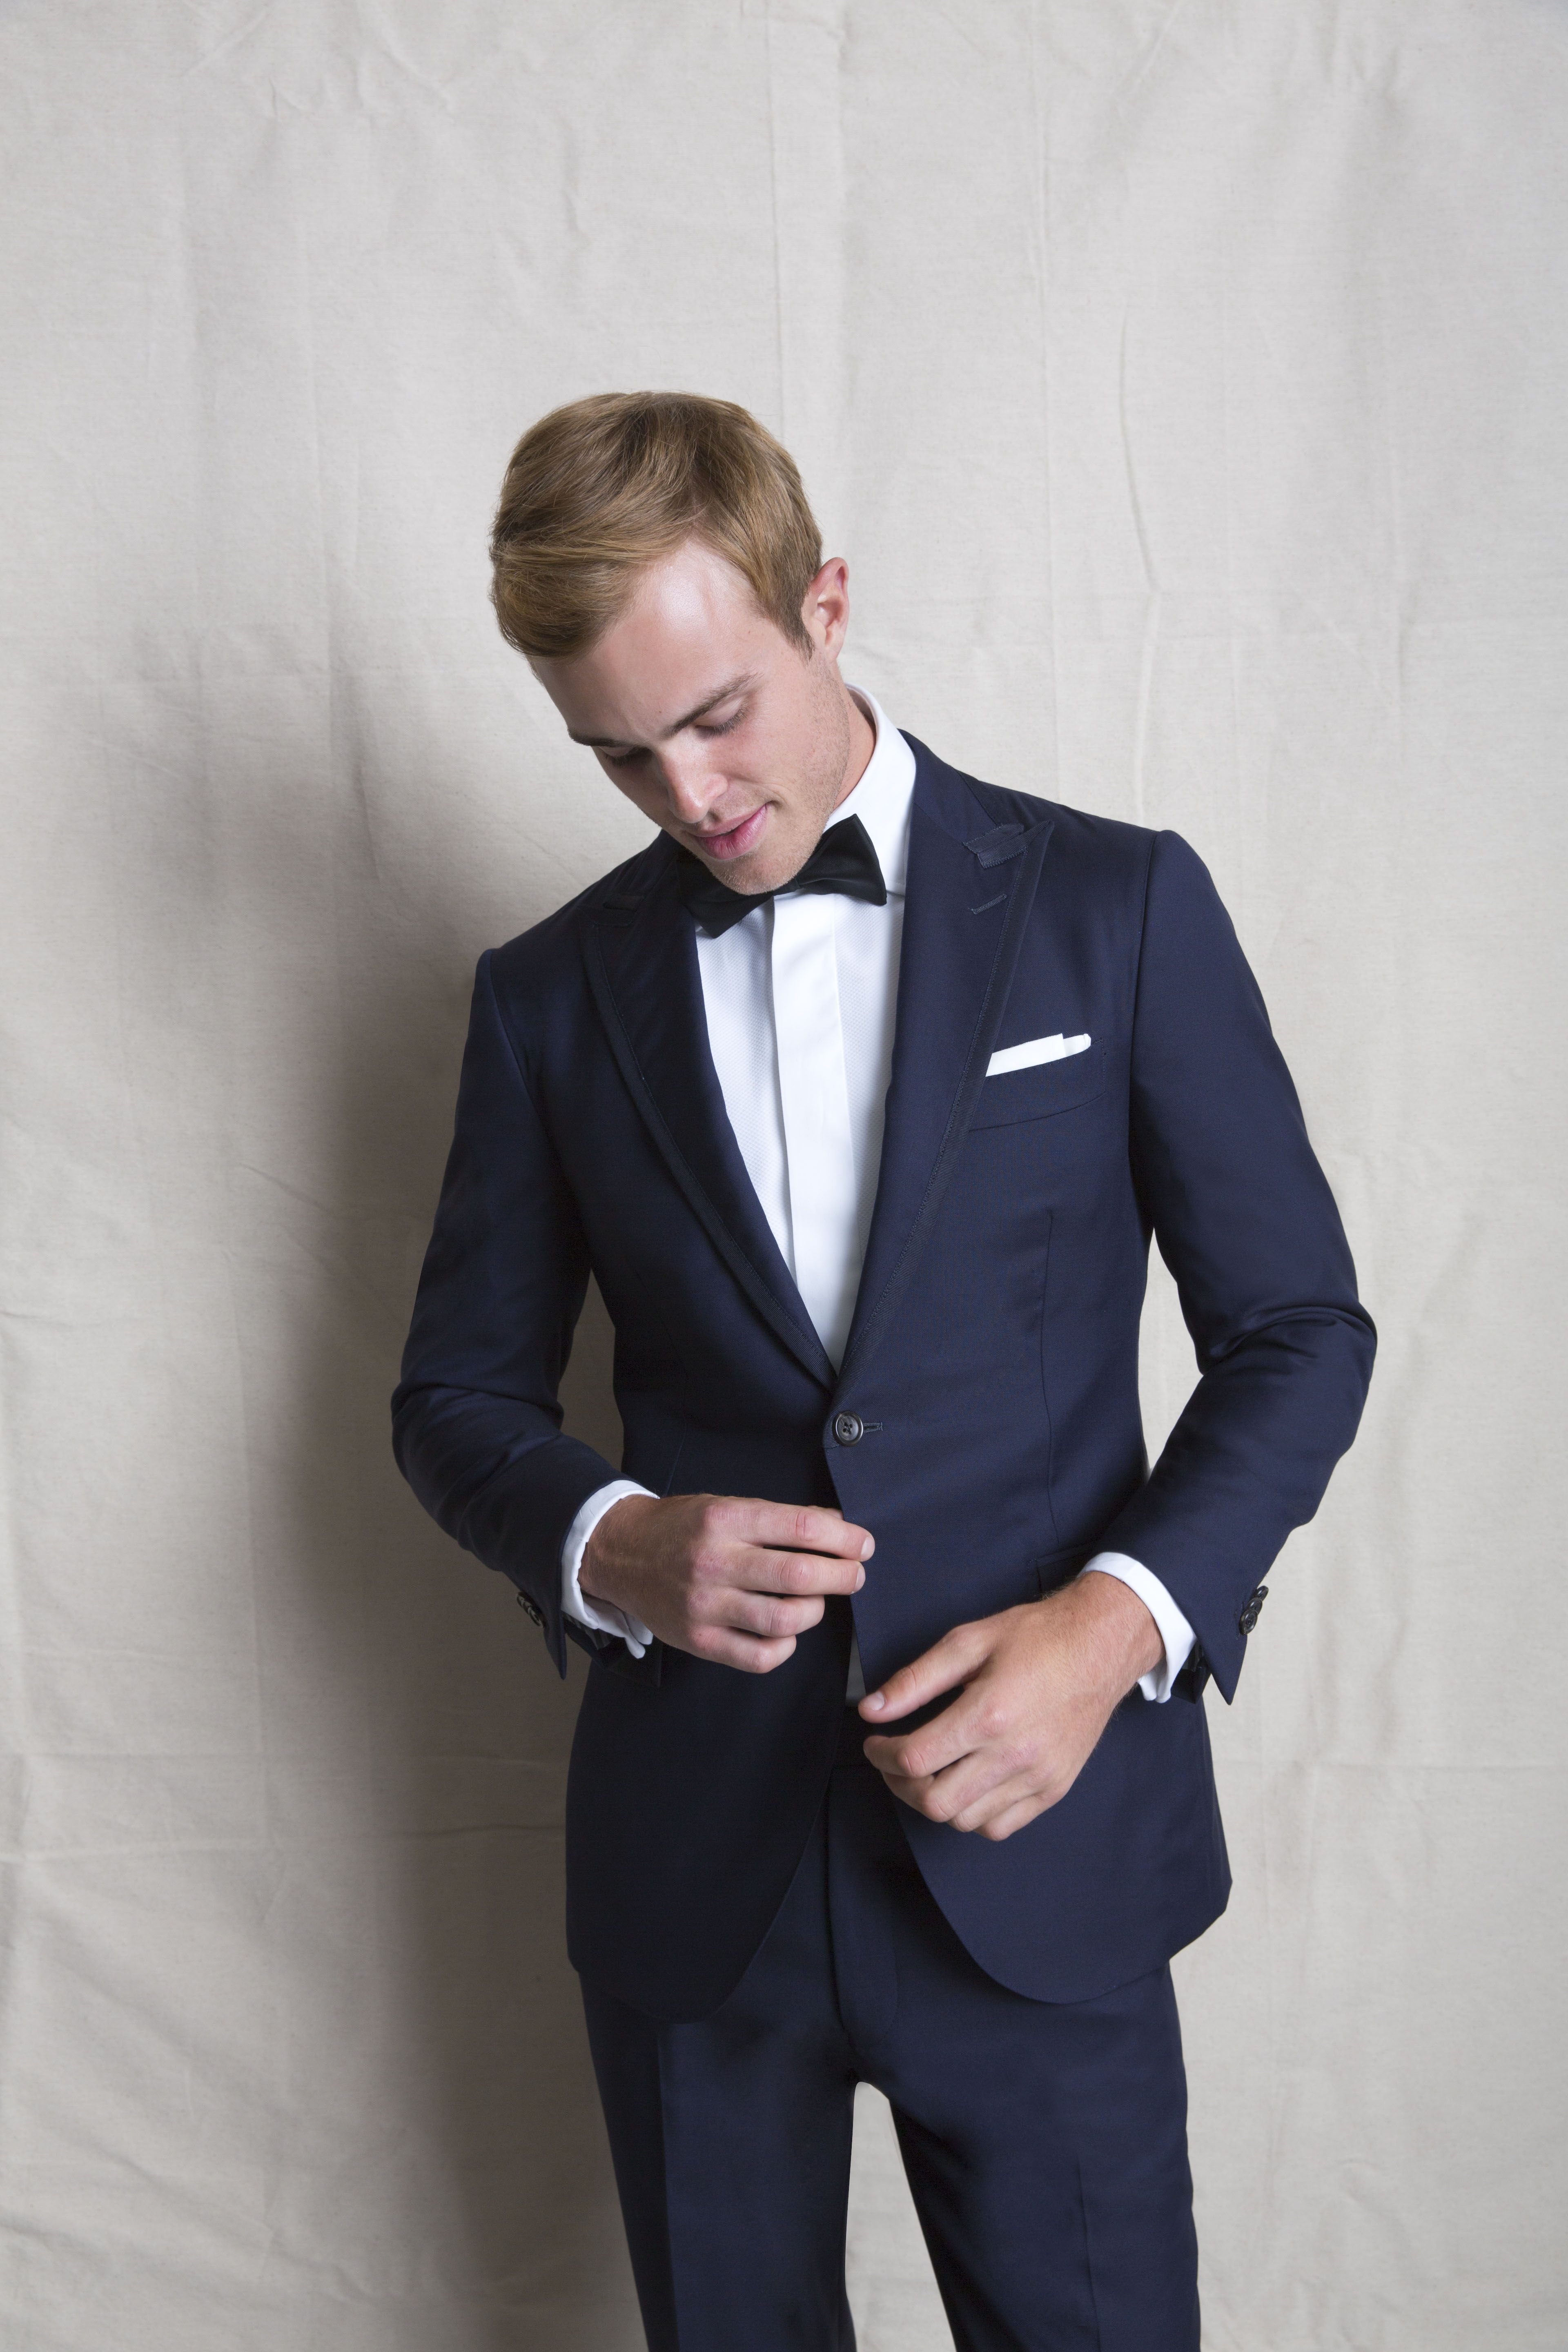 getting hitched this winter or need a new formal suit for